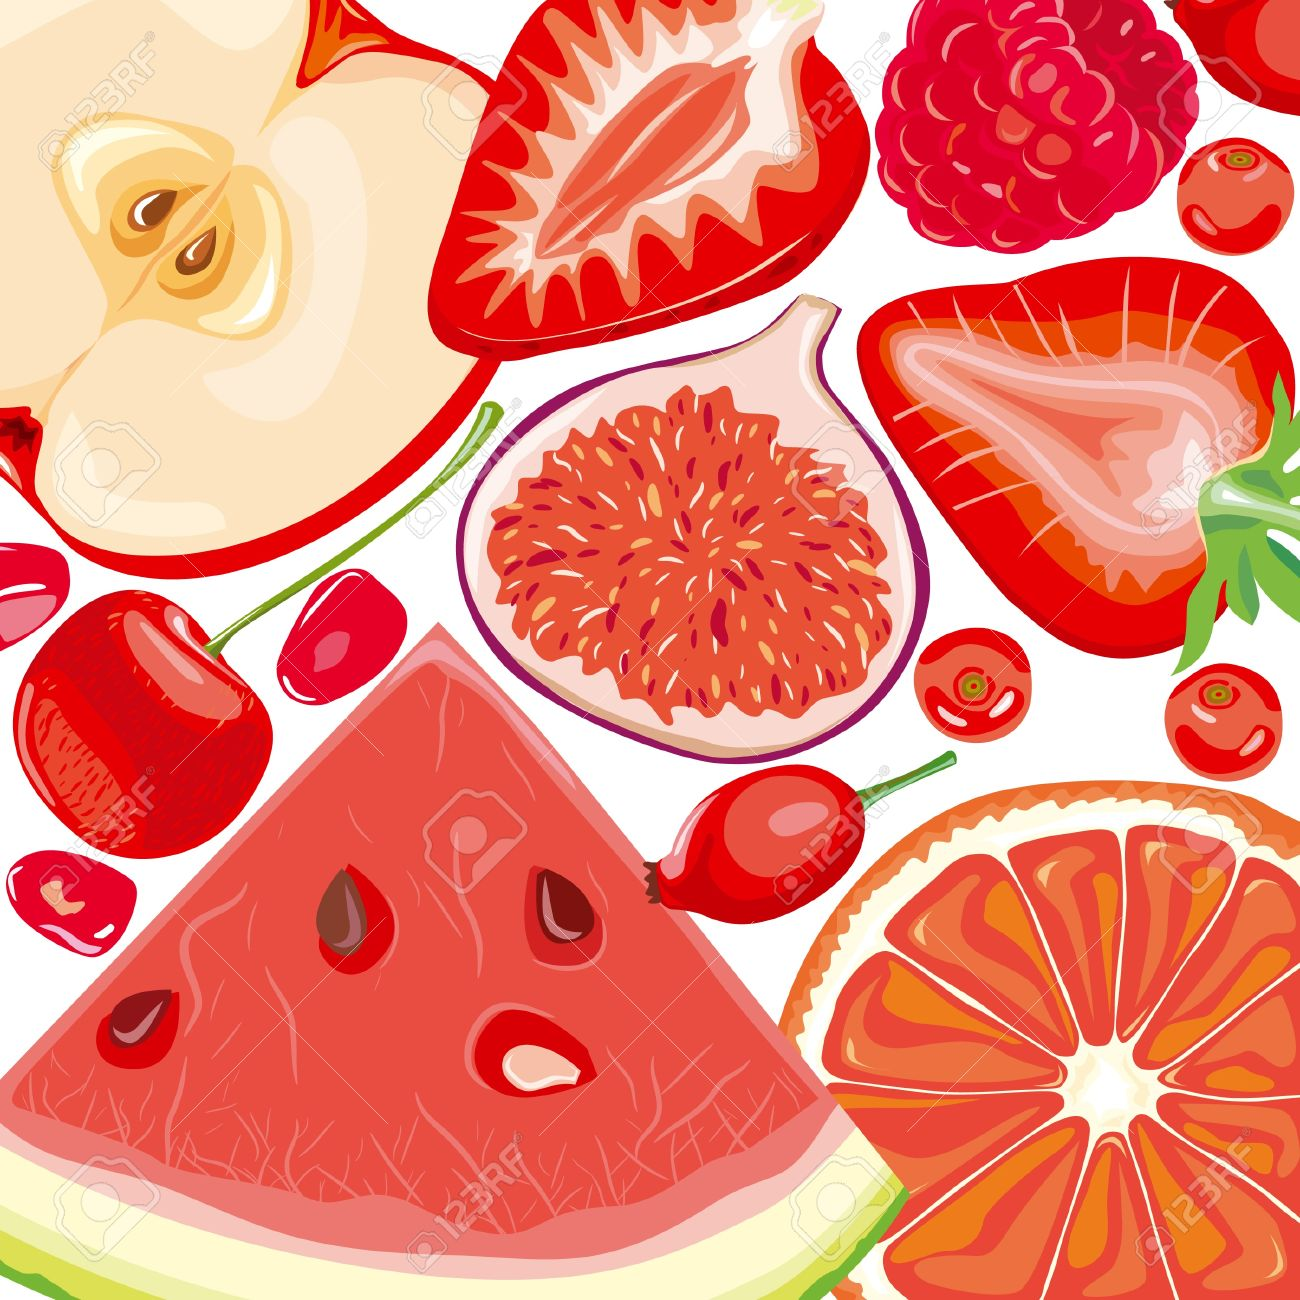 Berry red fruit mix. Berries clipart vector